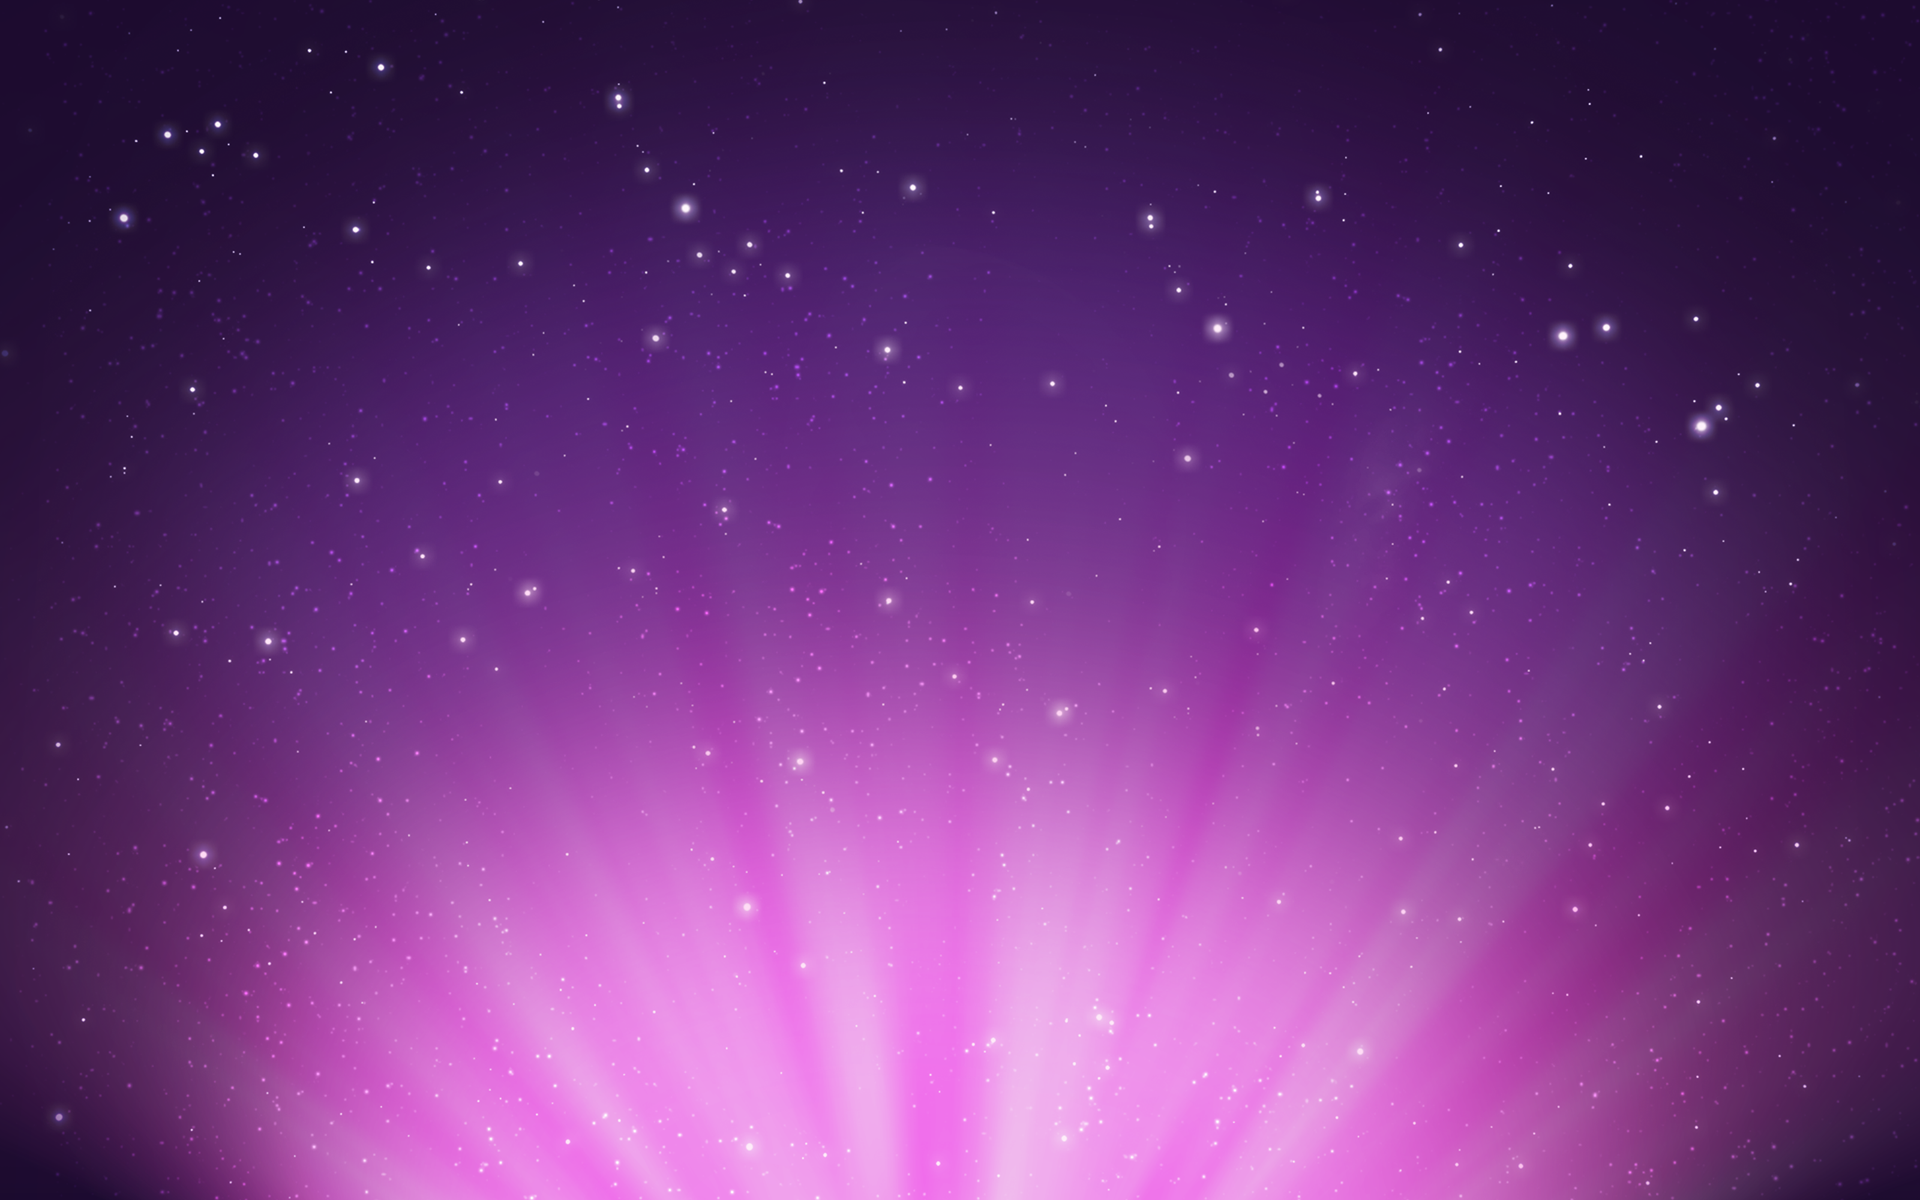 Stars background | PSDGraphics Stars Wallpaper Backgrounds - 52DazheW  Gallery Purple Space Background wallpaper - 66684 PlusPng.com  - Purple Star PNG HD